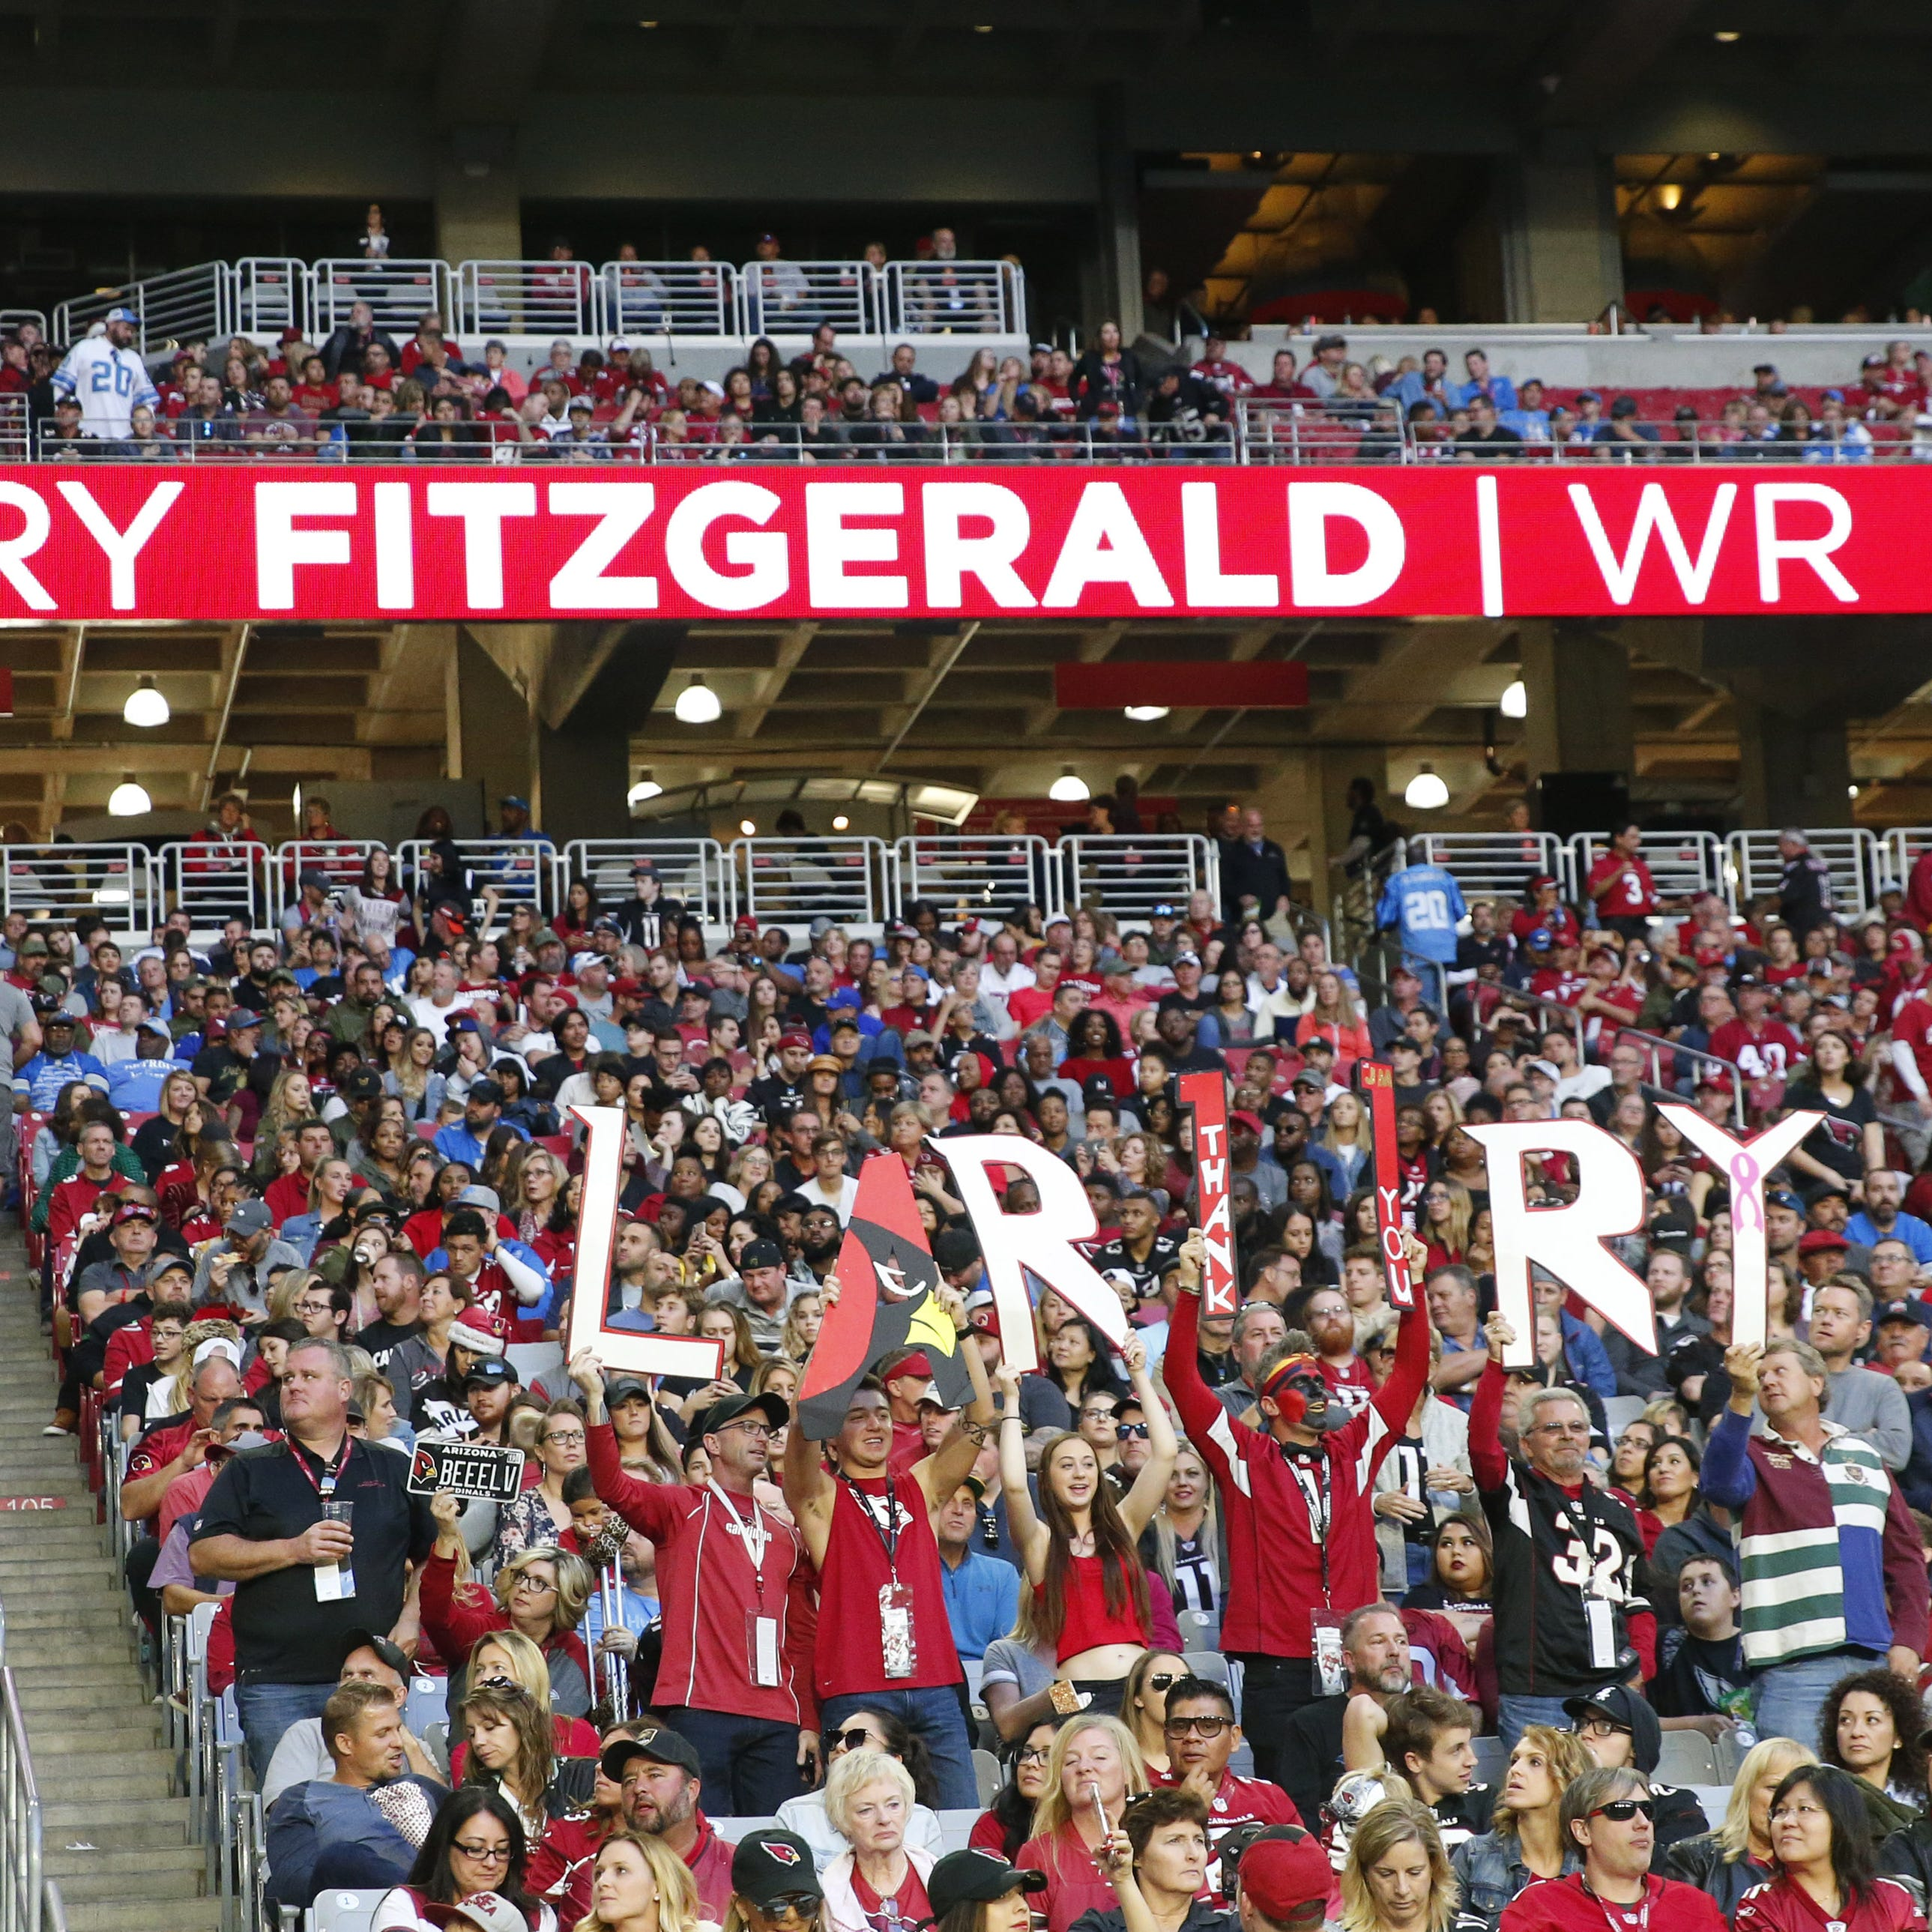 Dear Larry Fitzgerald, don't retire: Arizona sports fans need you